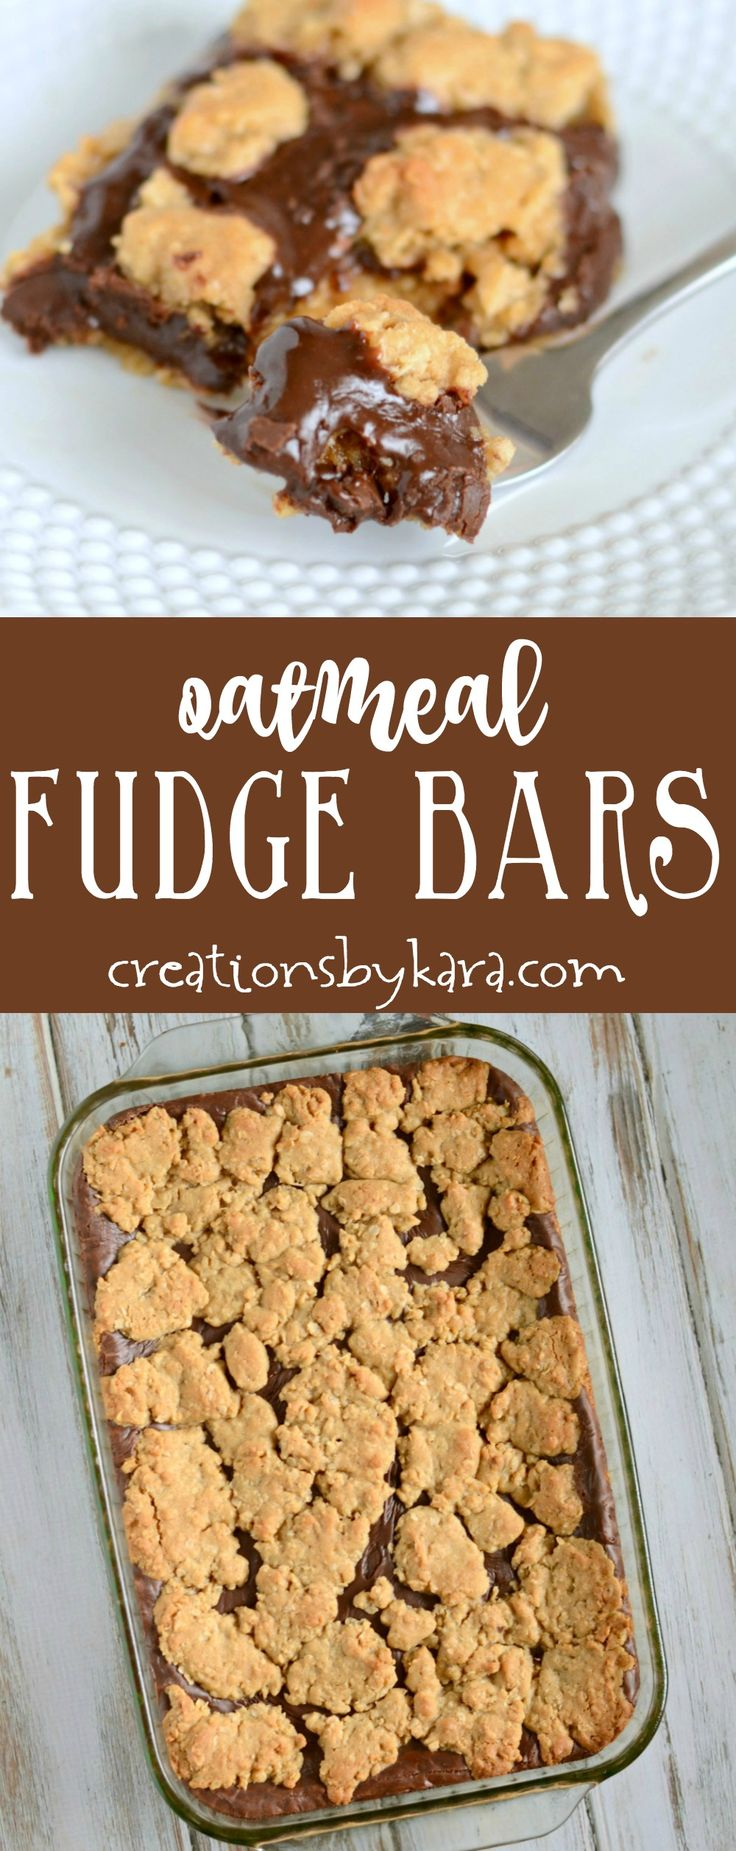 Everyone loves these decadent Oatmeal Fudge Bars. Layers of buttery oat crust with an ooey gooey layer of fudge in the middle. A must try bar recipe! via creationsbykara.com